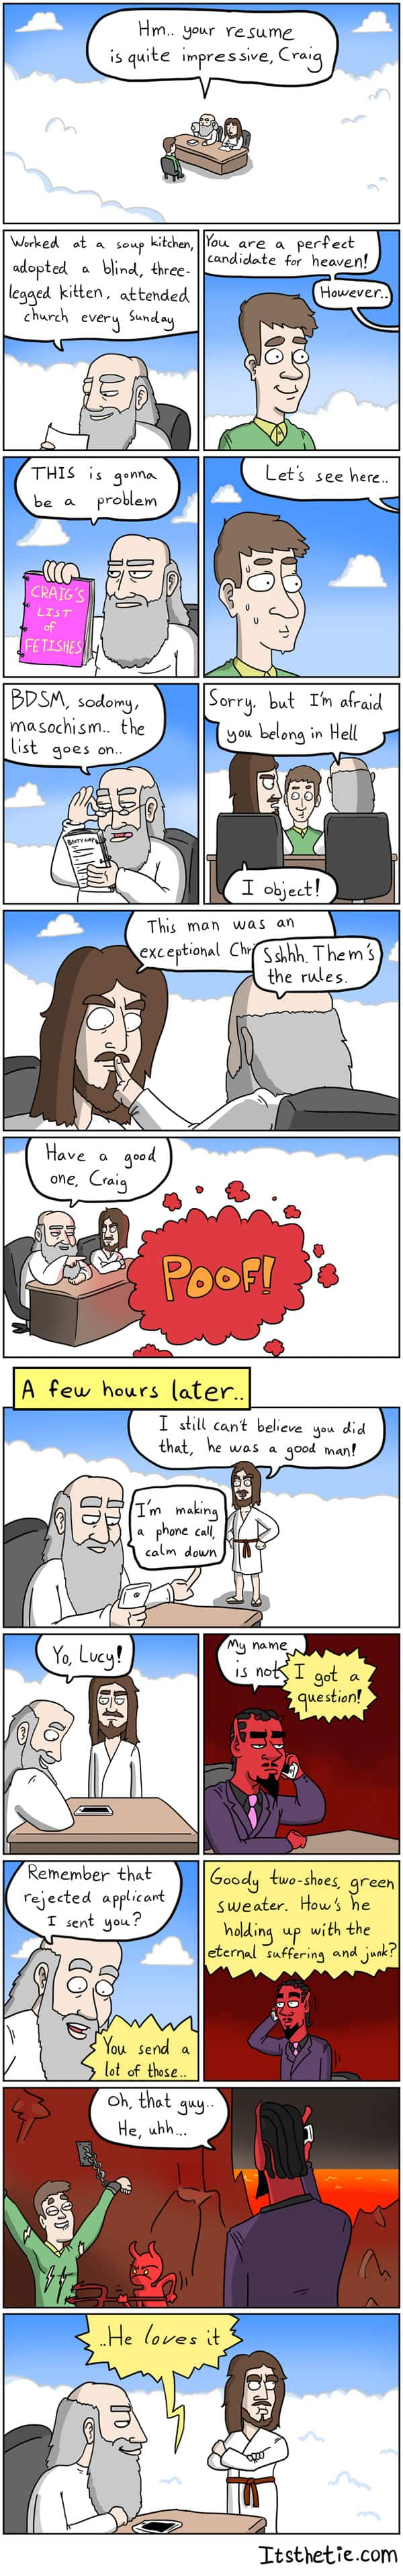 The Adventures of God: The rejected applicants